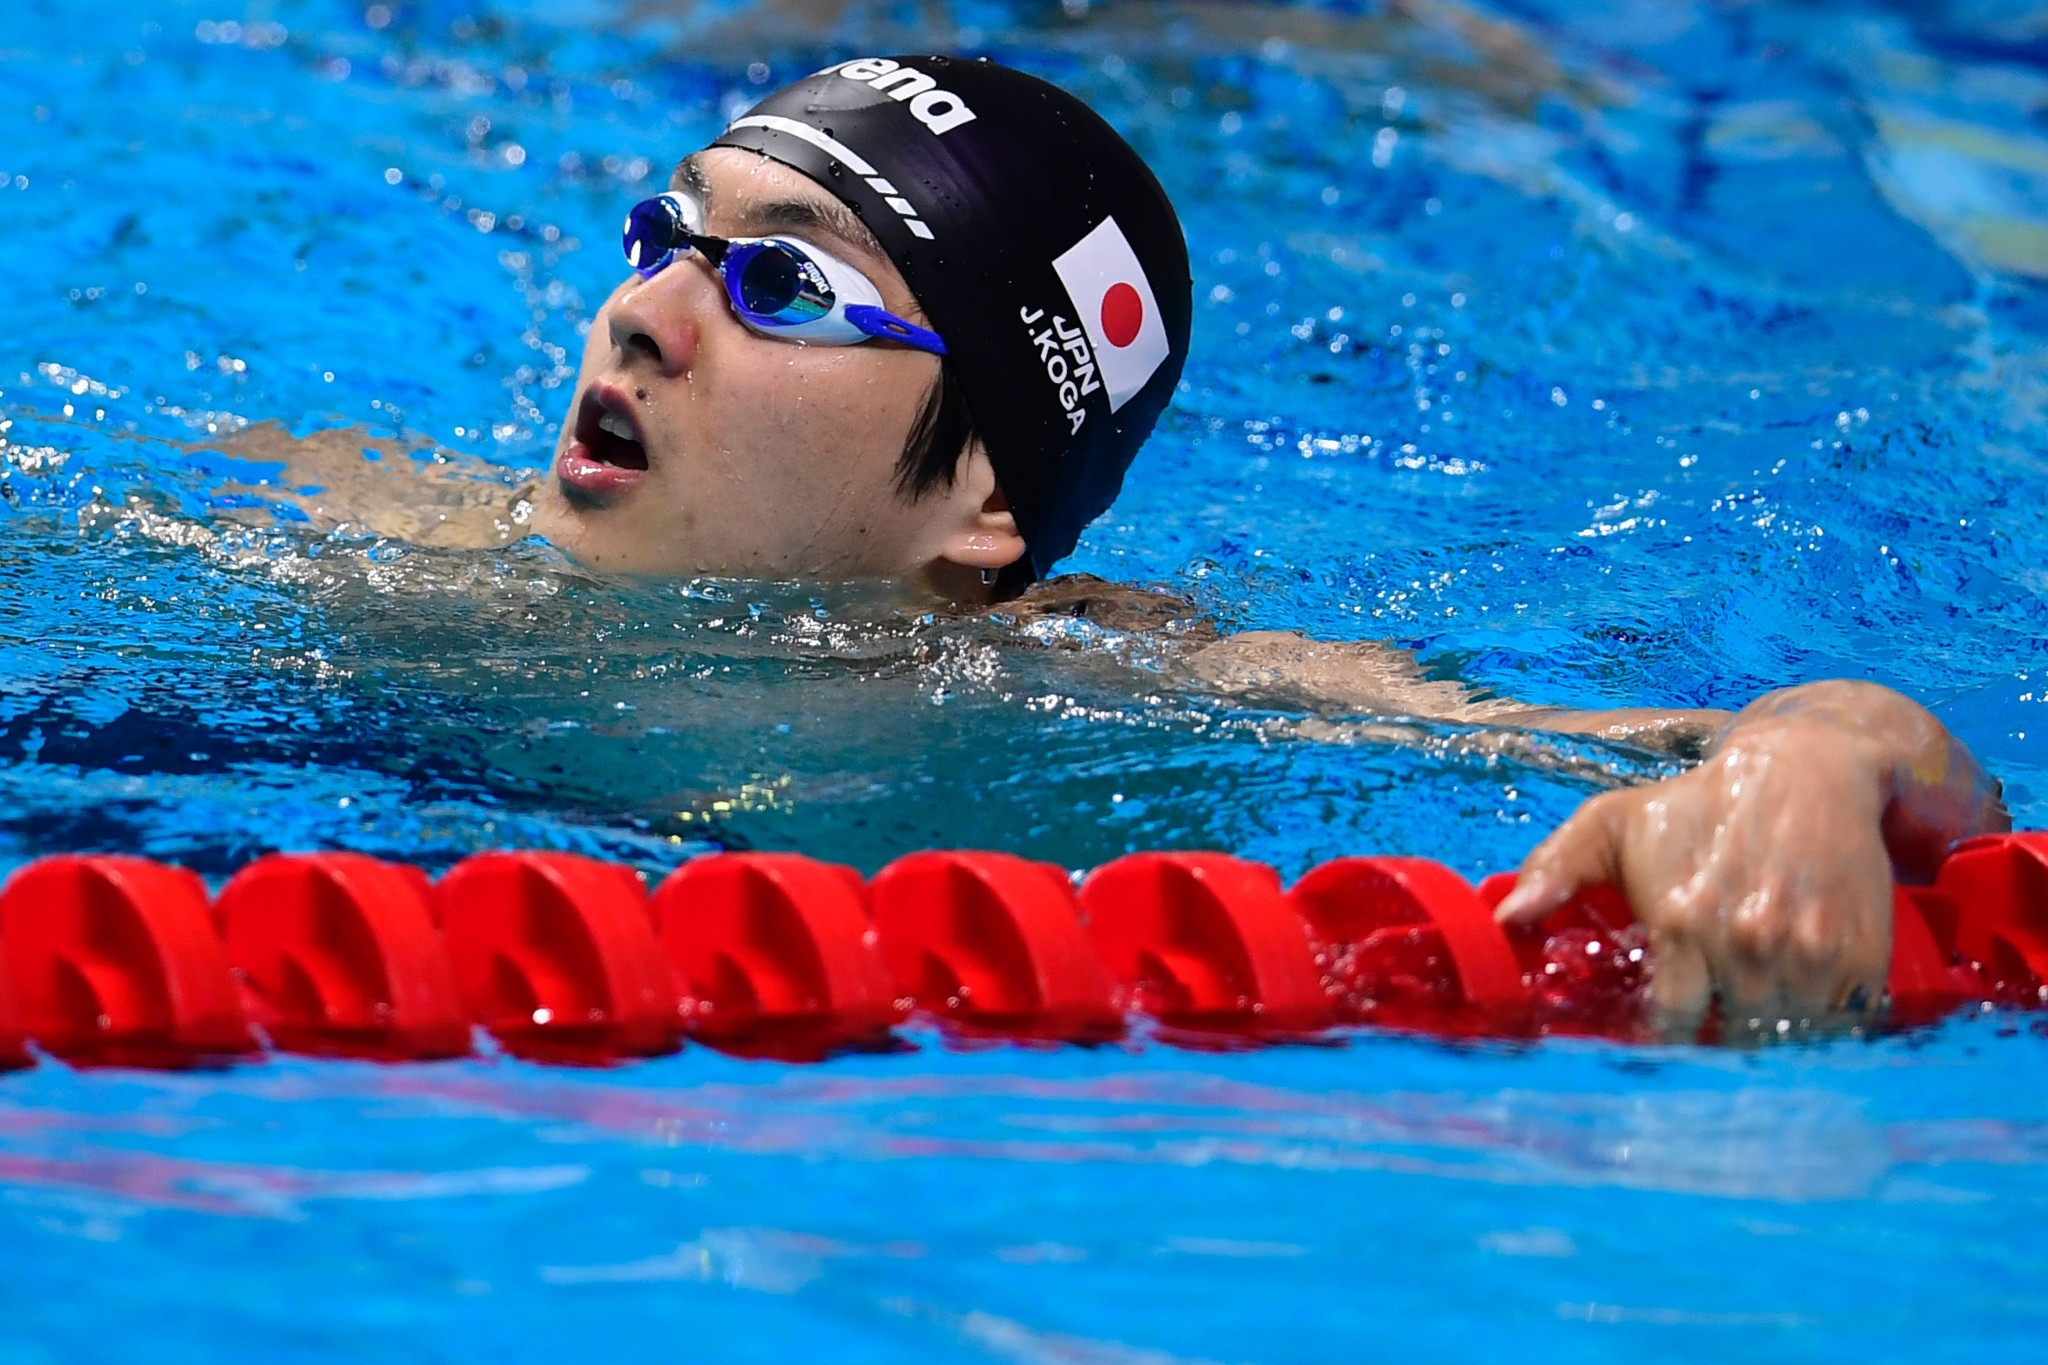 Top Japanese swimmer withdrawn from Asian Games squad after failed drugs test